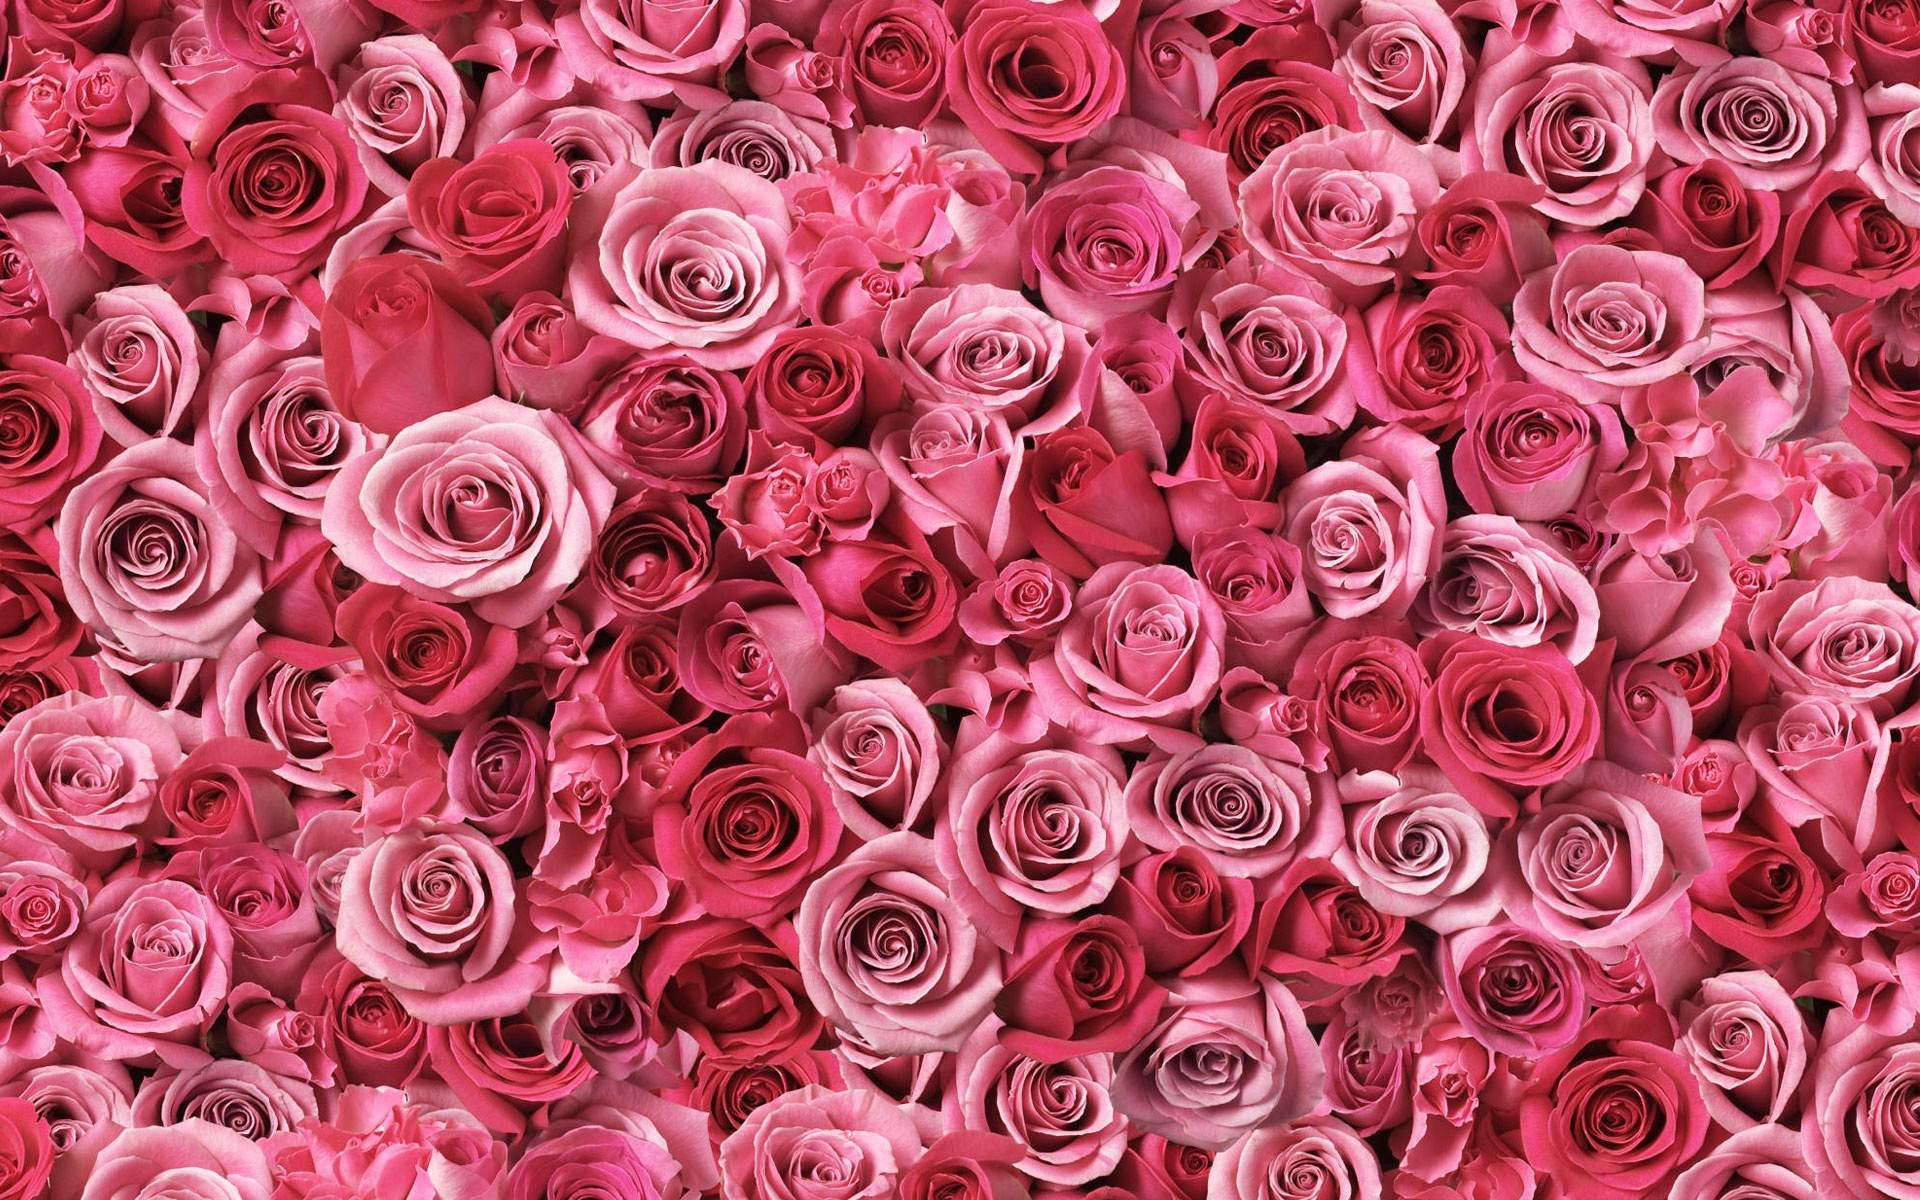 Pink Roses Wallpaper Wallpaper High Definition High Quality